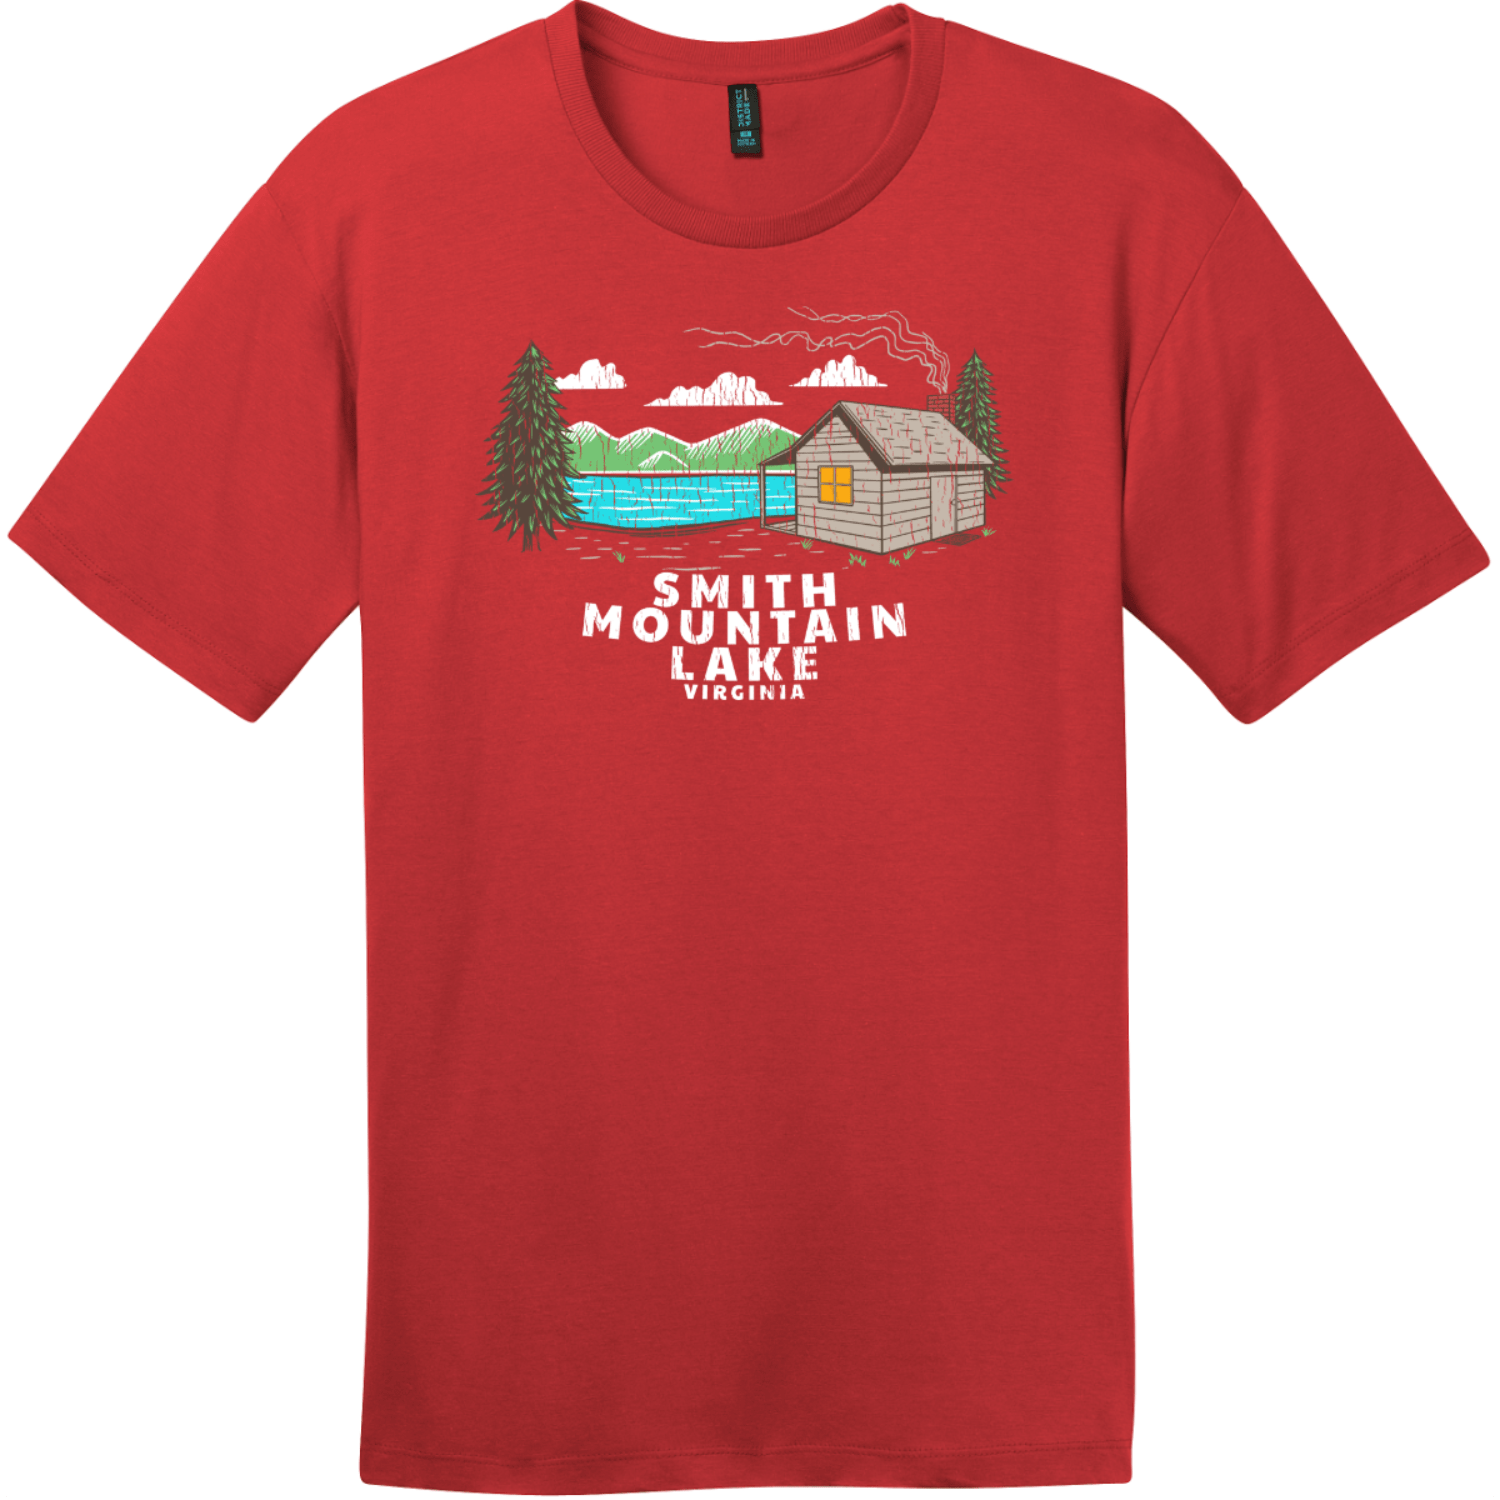 Smith Mountain Lake Vintage T-Shirt Classic Red District Perfect Weight Tee DT104